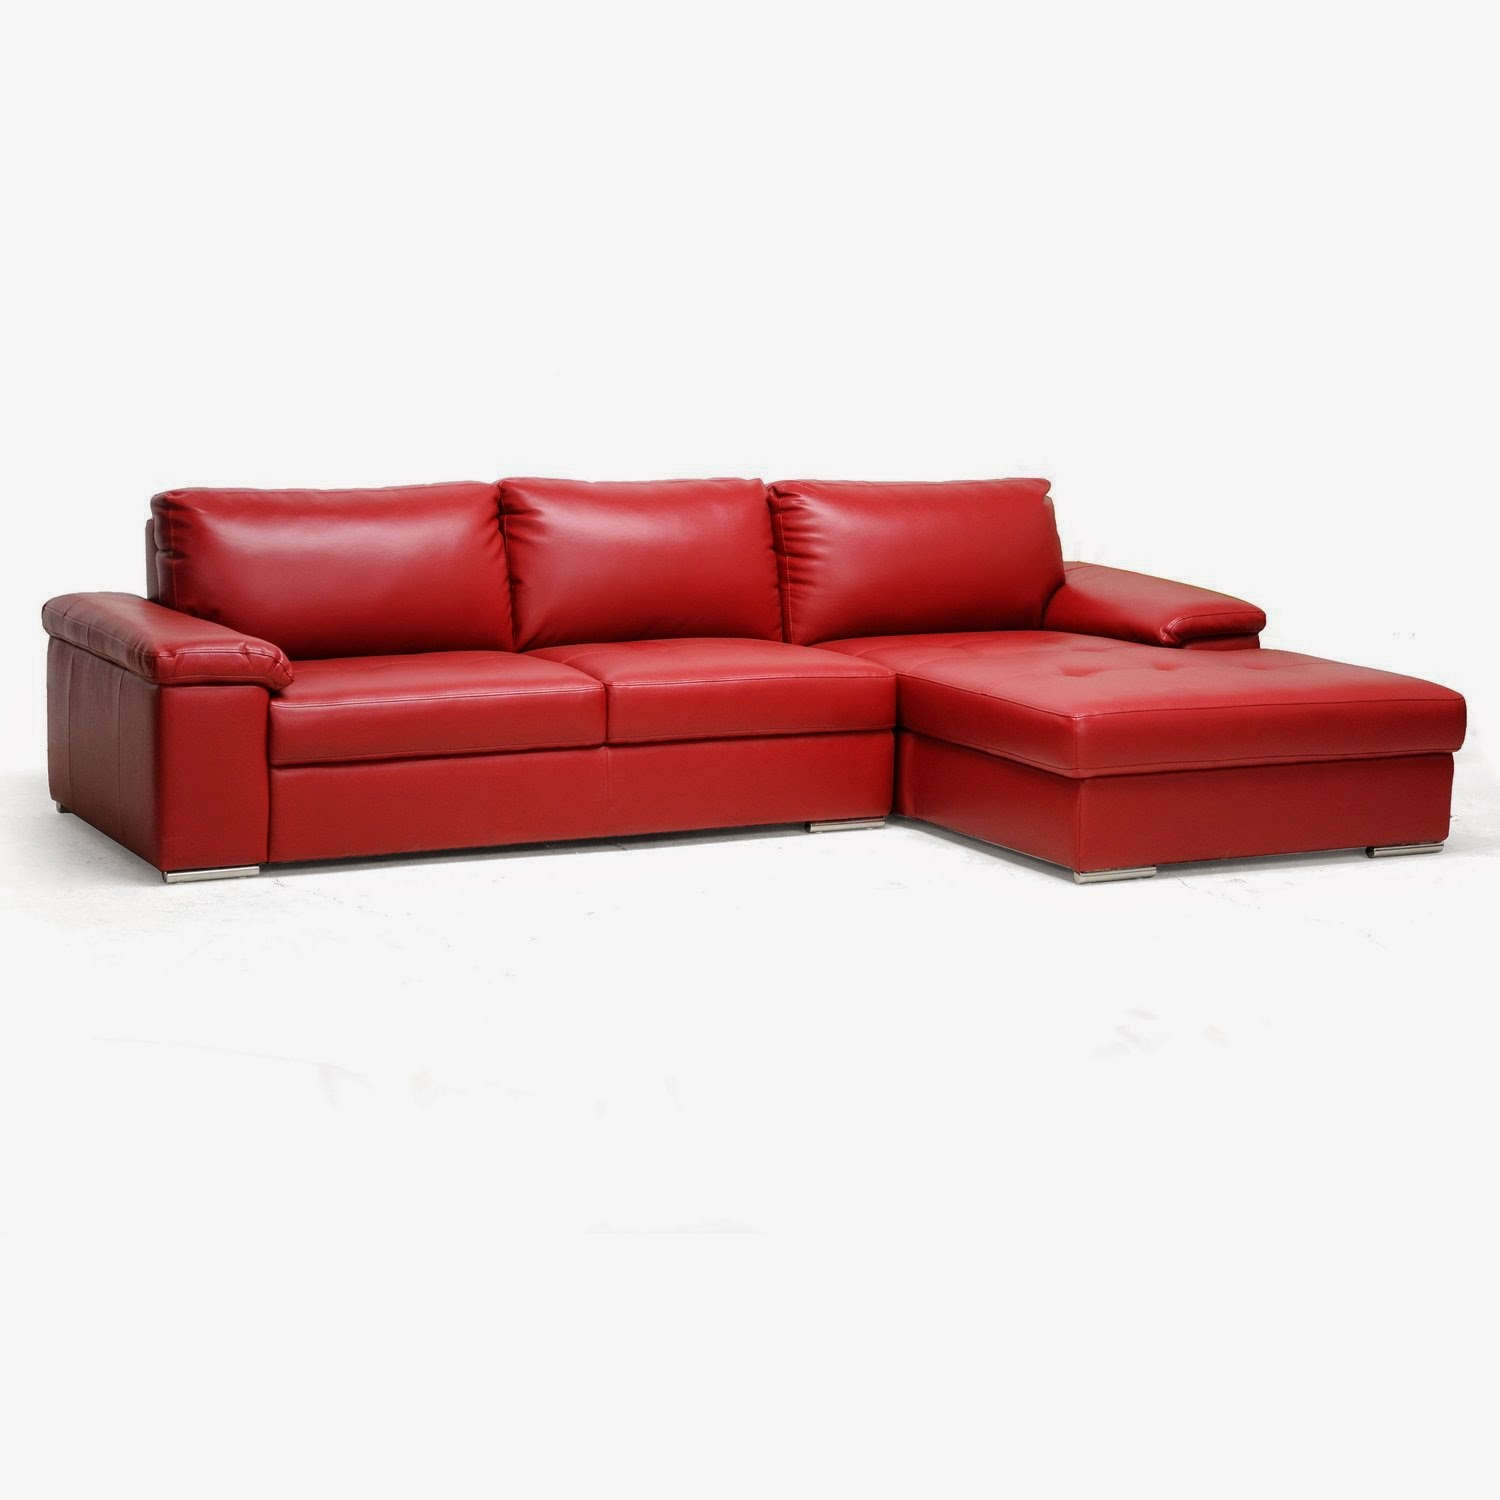 Red Sectional Sofa Simmons Sofas Reviews Couch Leather